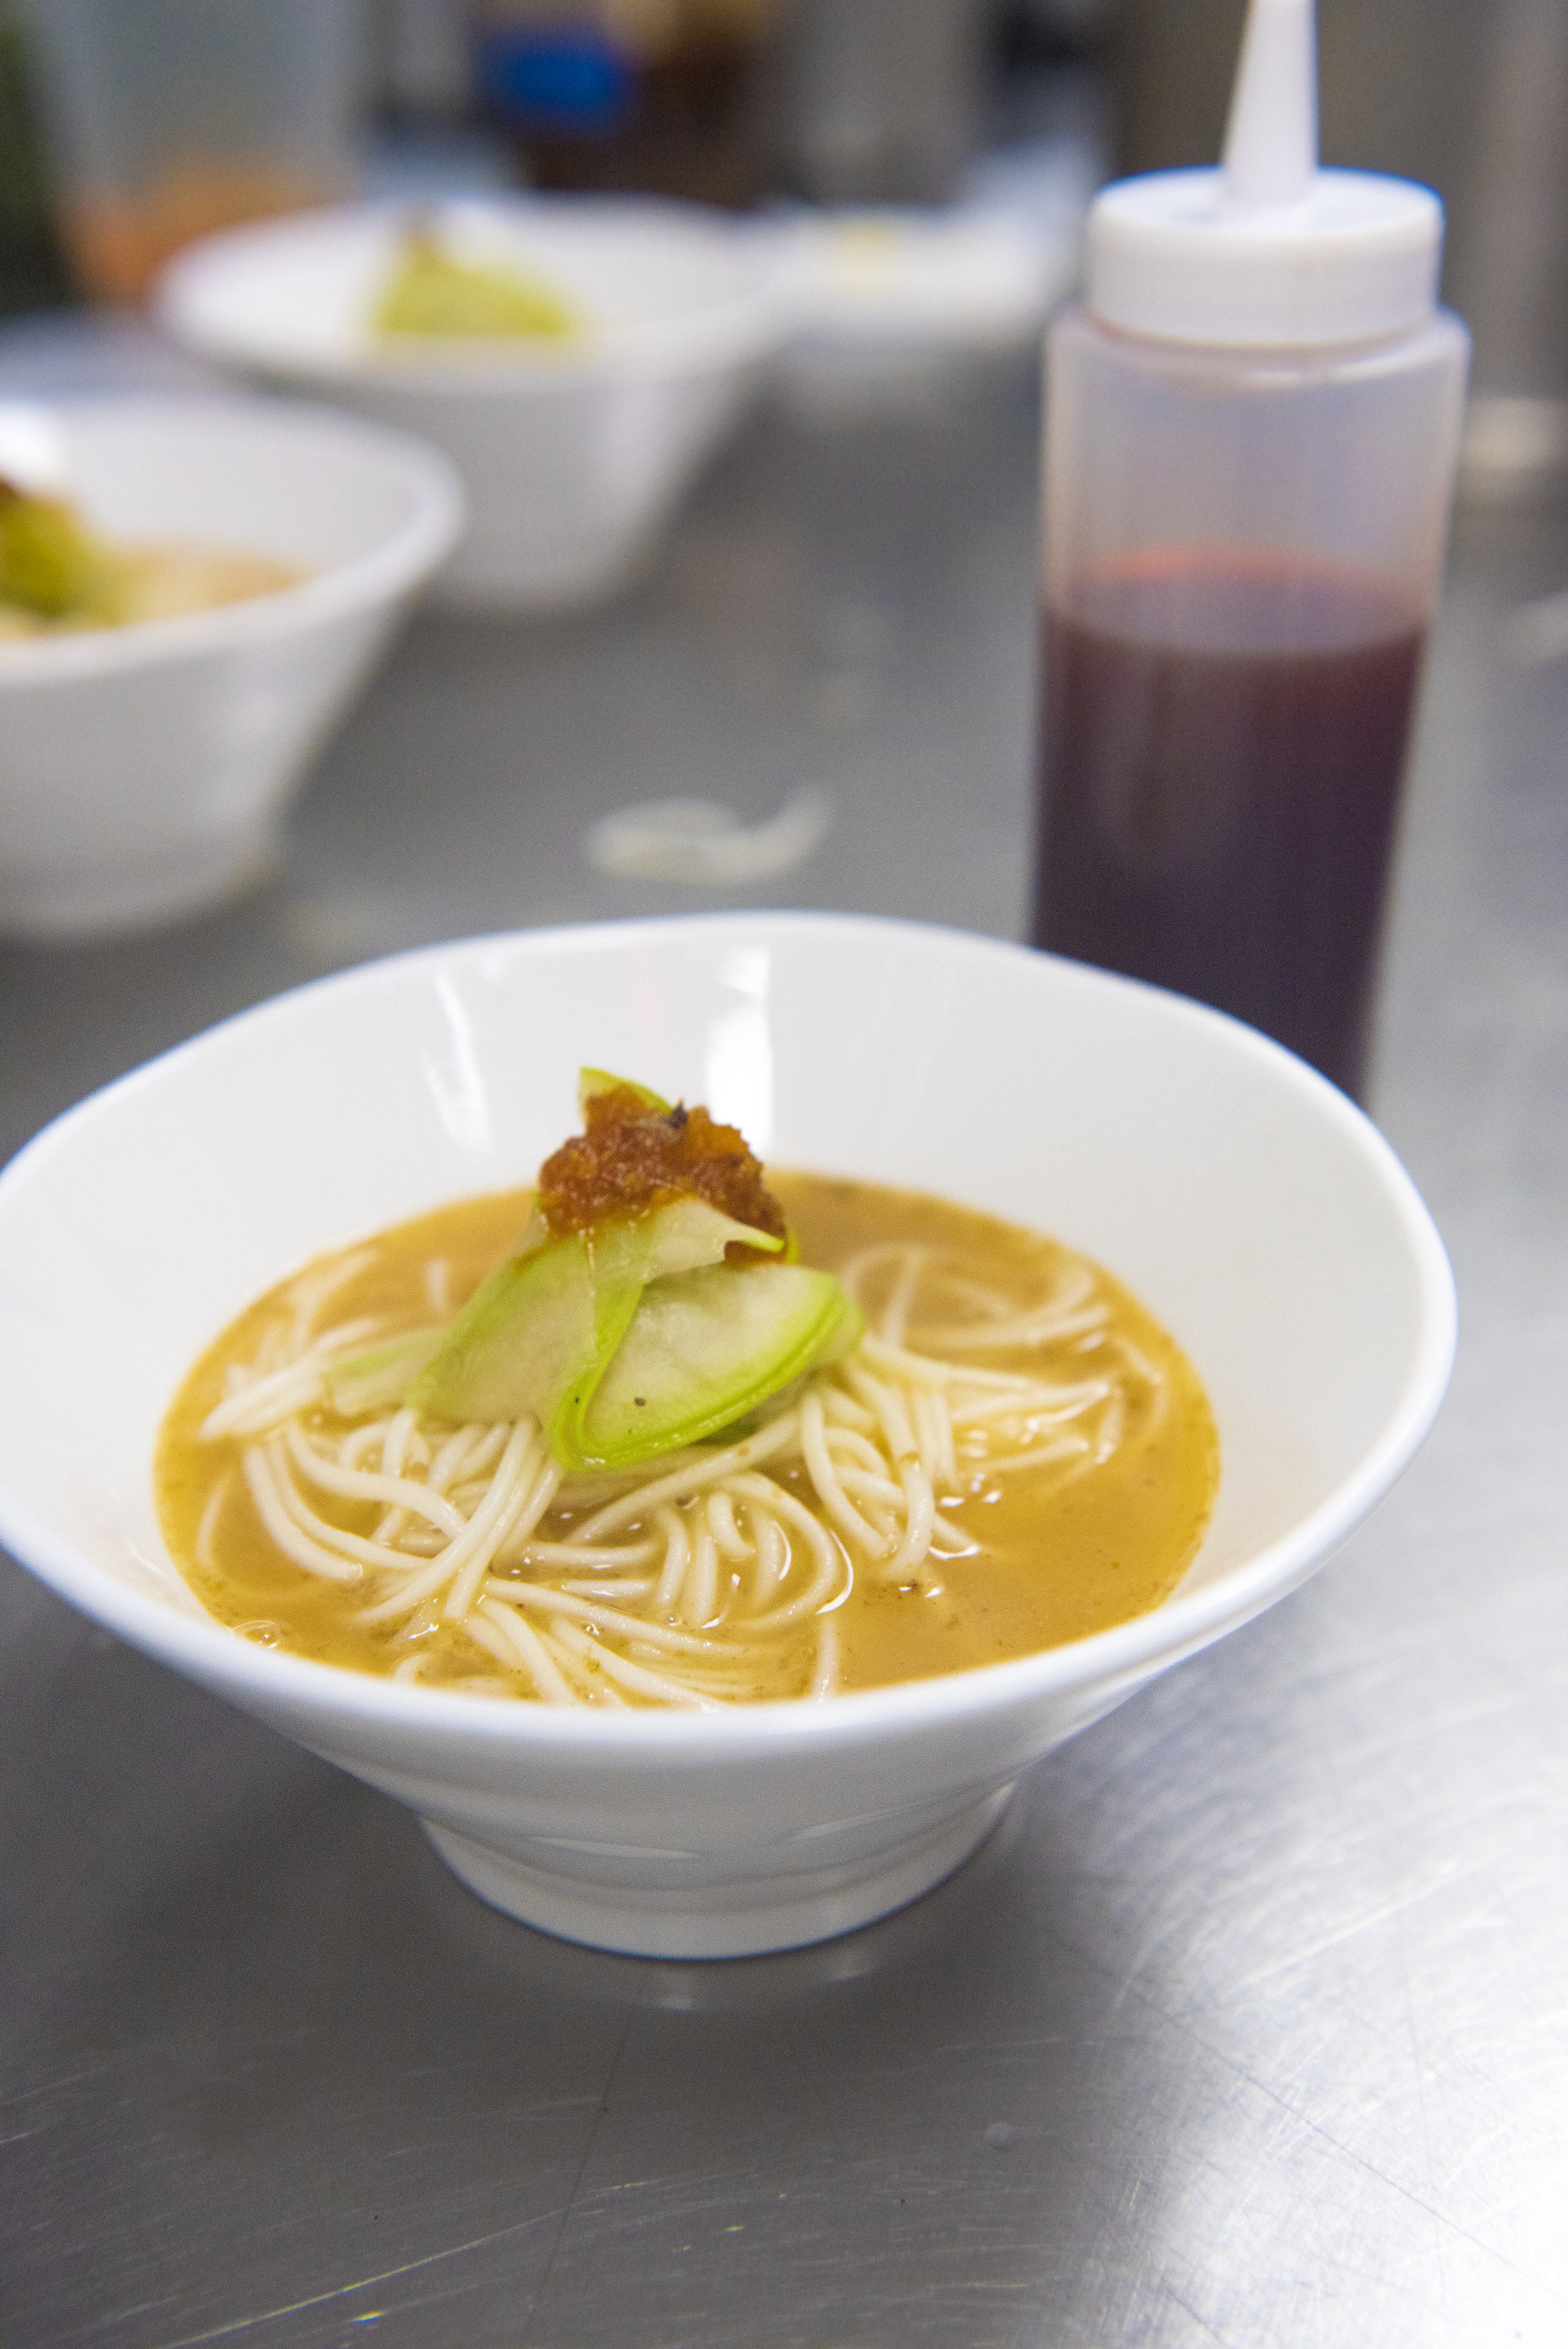 The 4th course: hanging noodles in duck and mutton broth with sweet melon, plus a touch of red vinegar